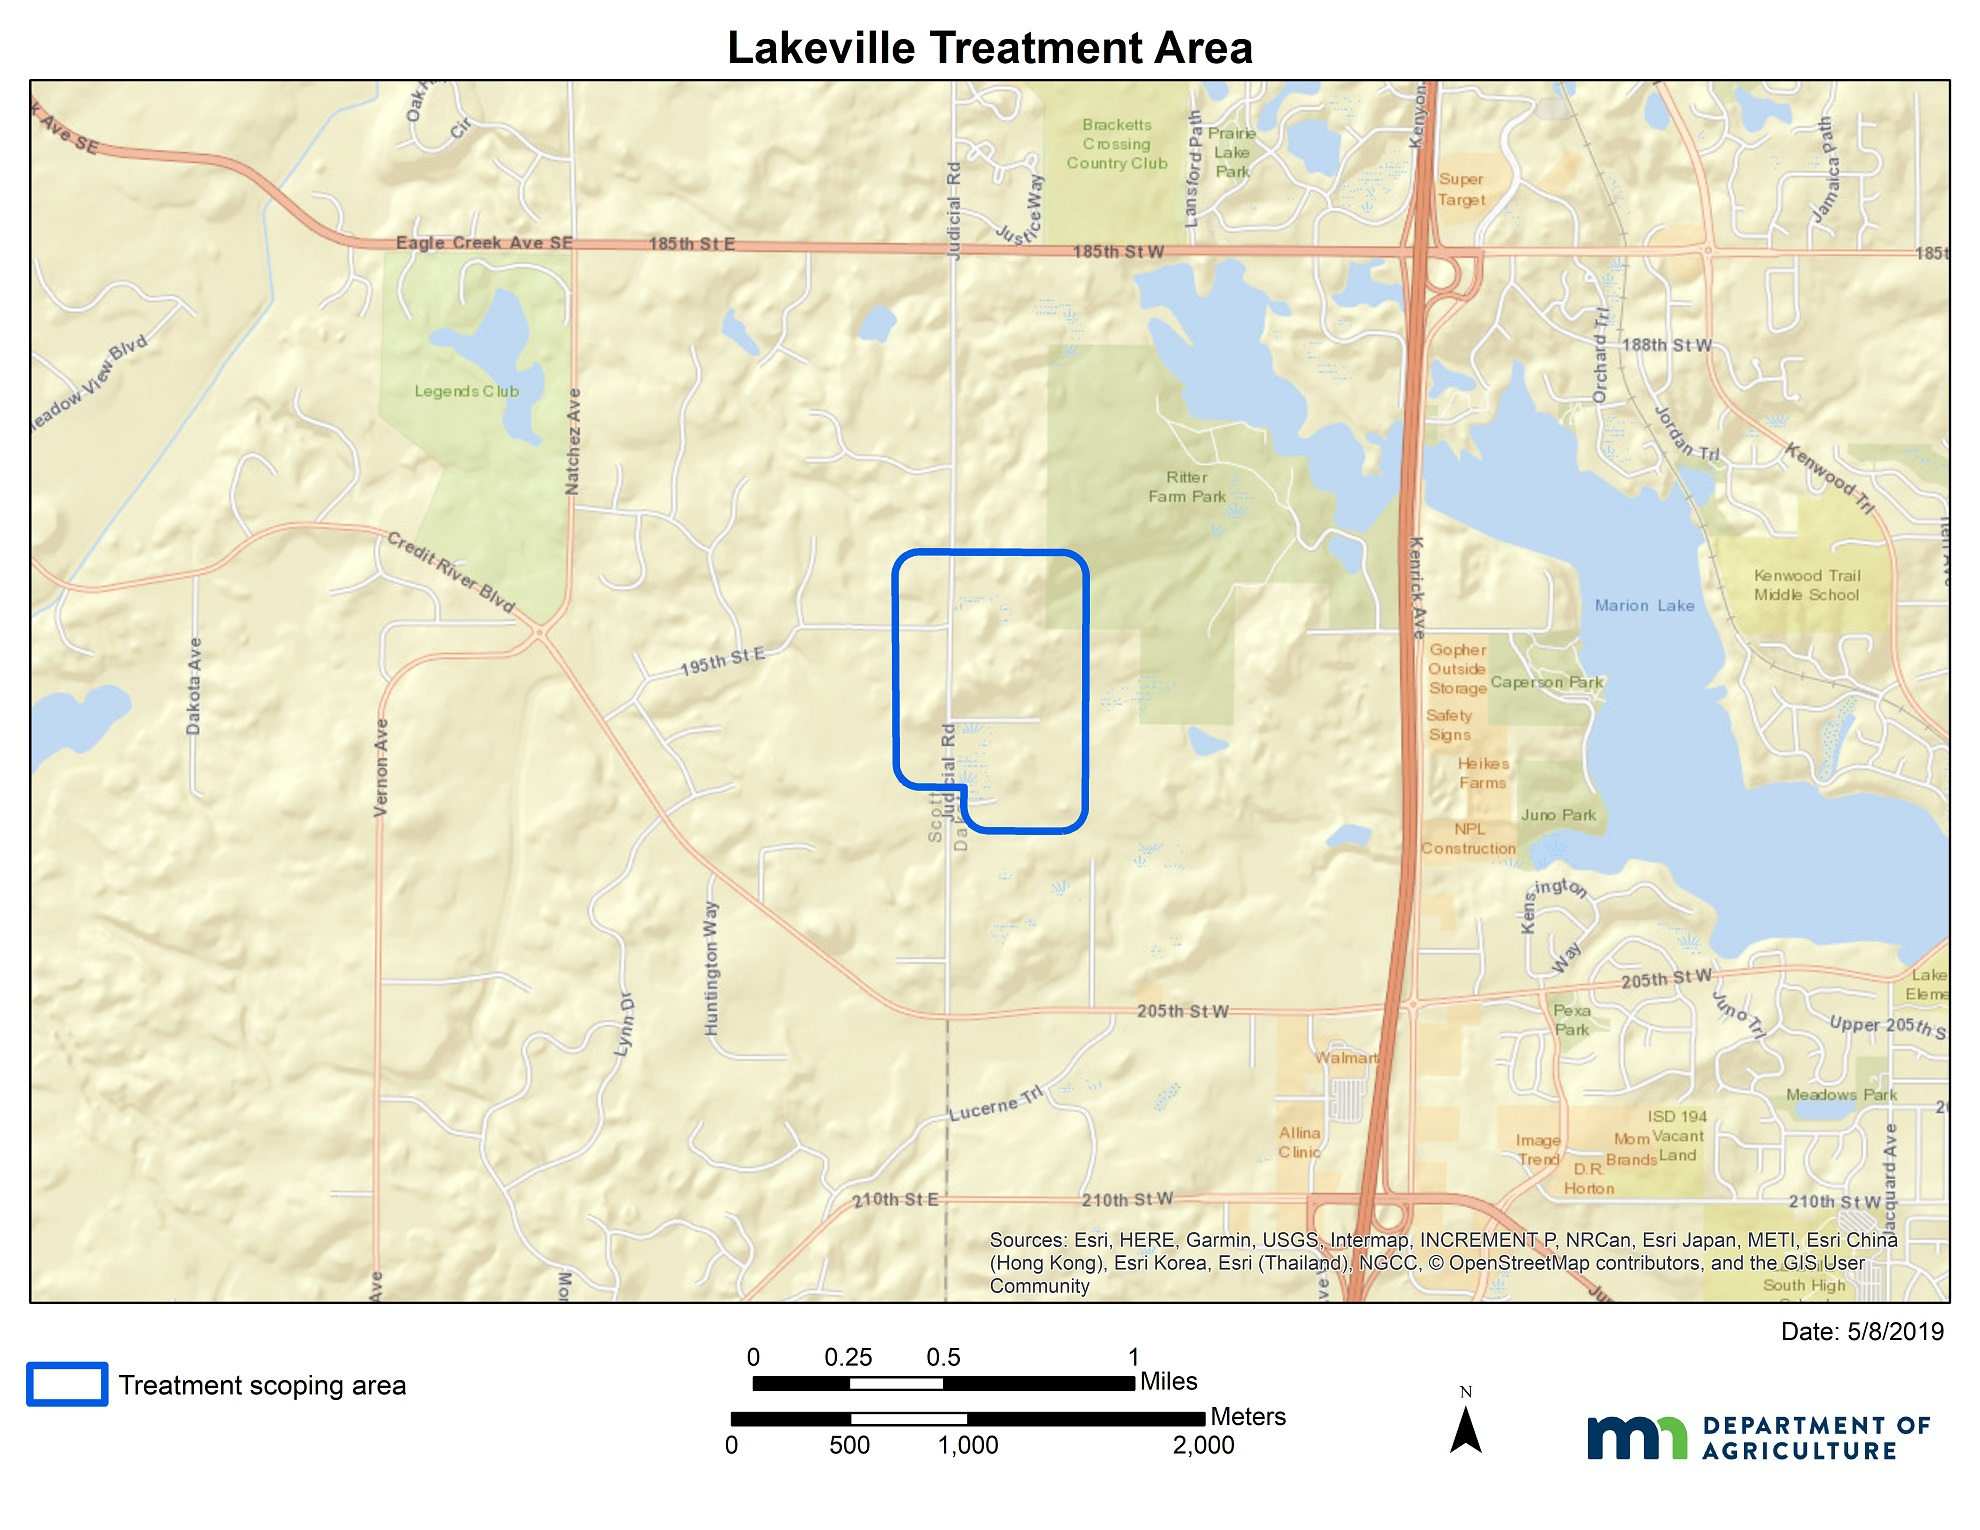 A map of the Lakeville treatment area